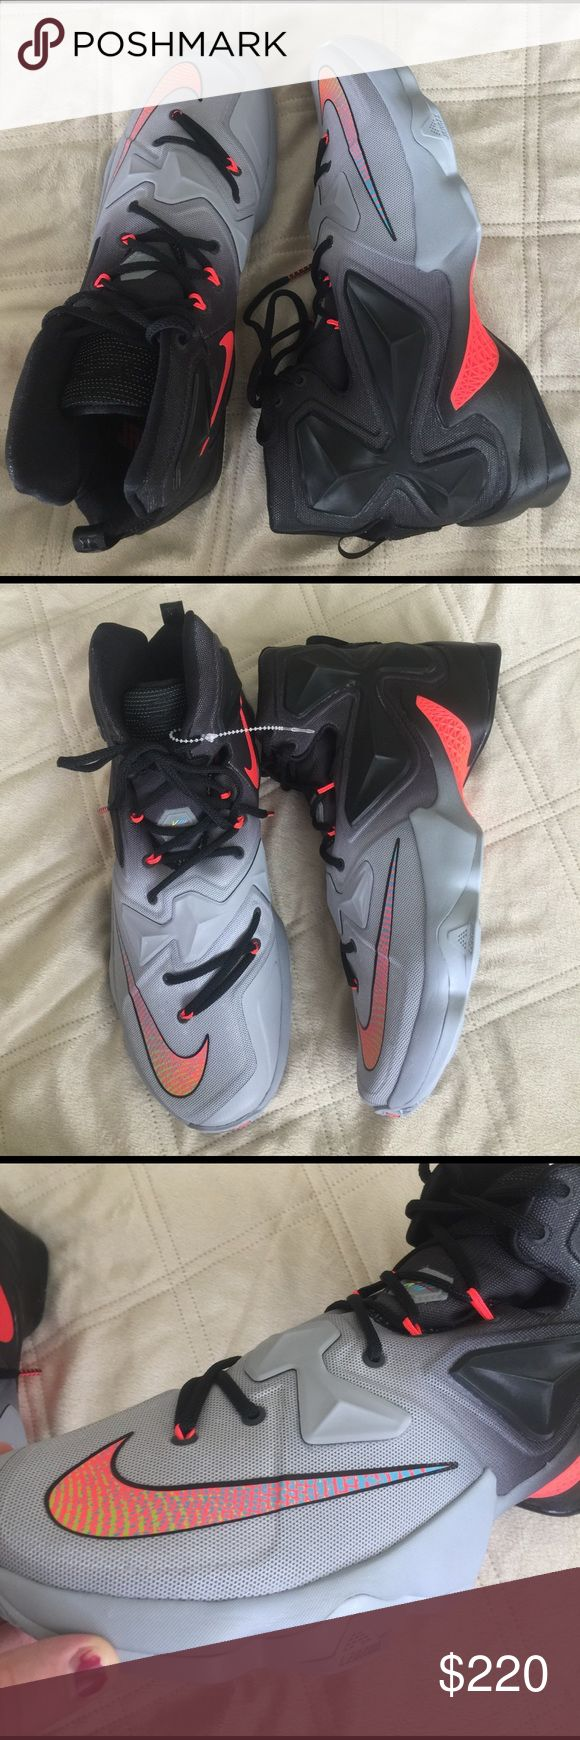 BRAND NEW 🌟 LEBRON JAMES XIII OMBRE NEON KICKS 12 BRAND NEW WITHOUT TAGS OR BOX!  Amazing shoes!!!  SHOW STOPPERS!  Men's size 12!  AMAZING NIKE LEBRON JAMES XIII high top shoes, sneakers. 🌟🌟🌟🌟🌟 Nike Shoes Athletic Shoes